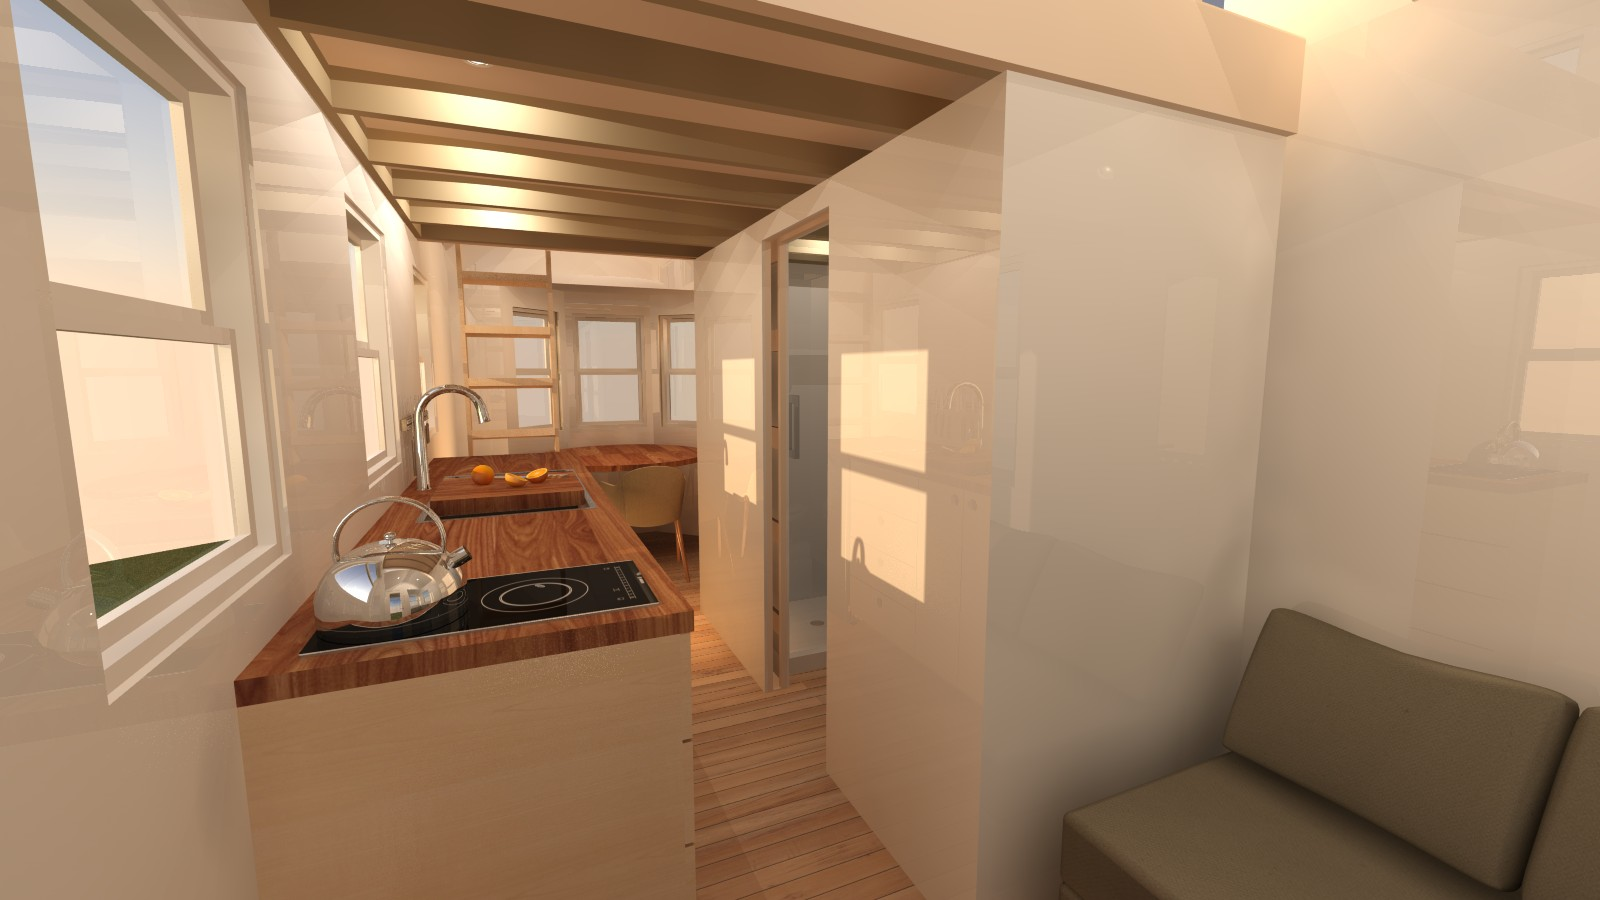 Talmage 20 Tiny House Plans